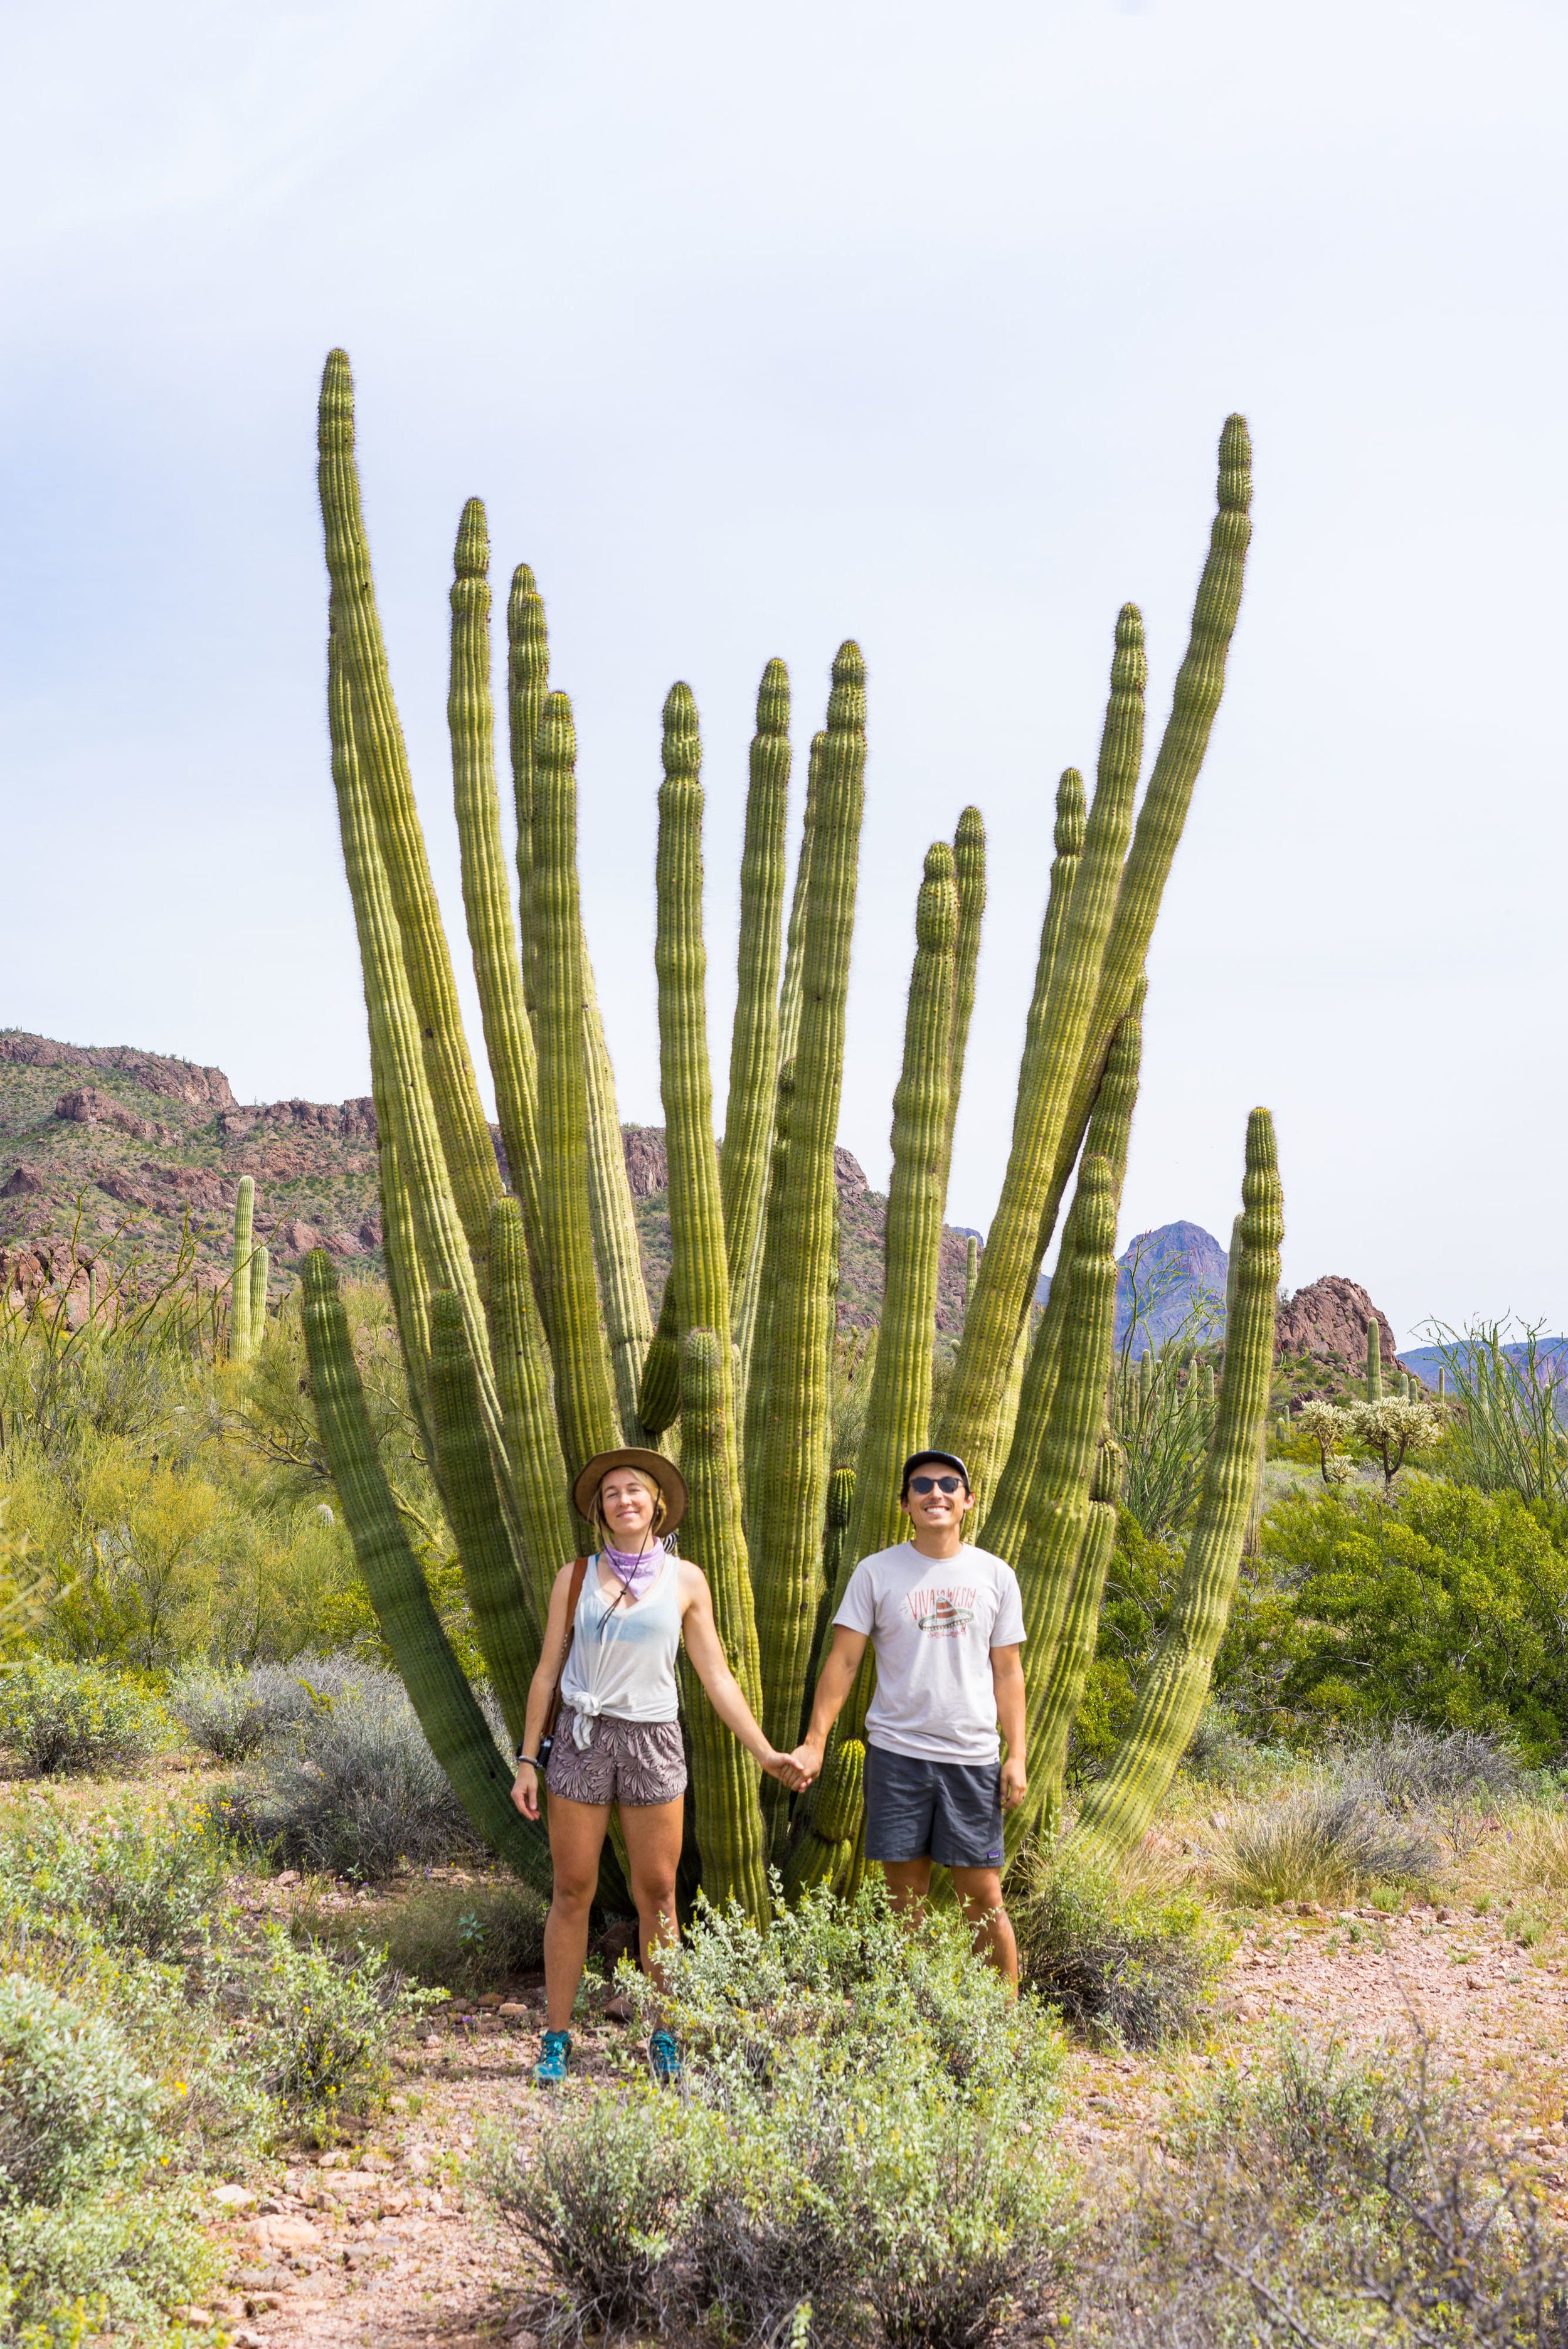 Us in front of a very beautiful Organ Pipe Cactus